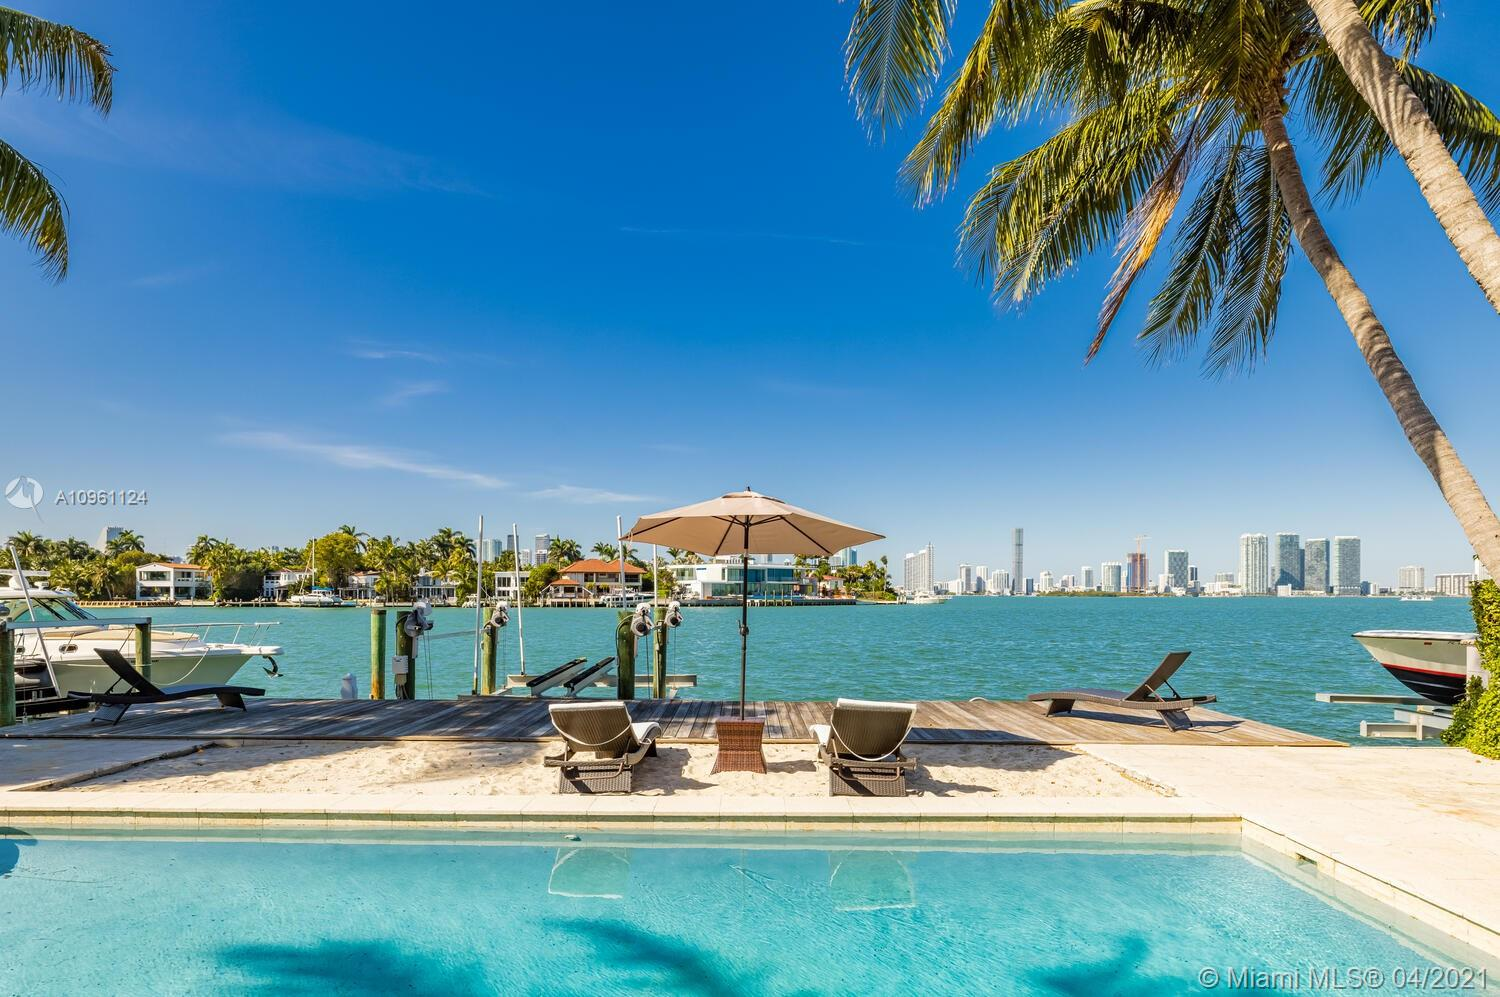 Venetian Islands - 620 W Dilido Dr, Miami Beach, FL 33139